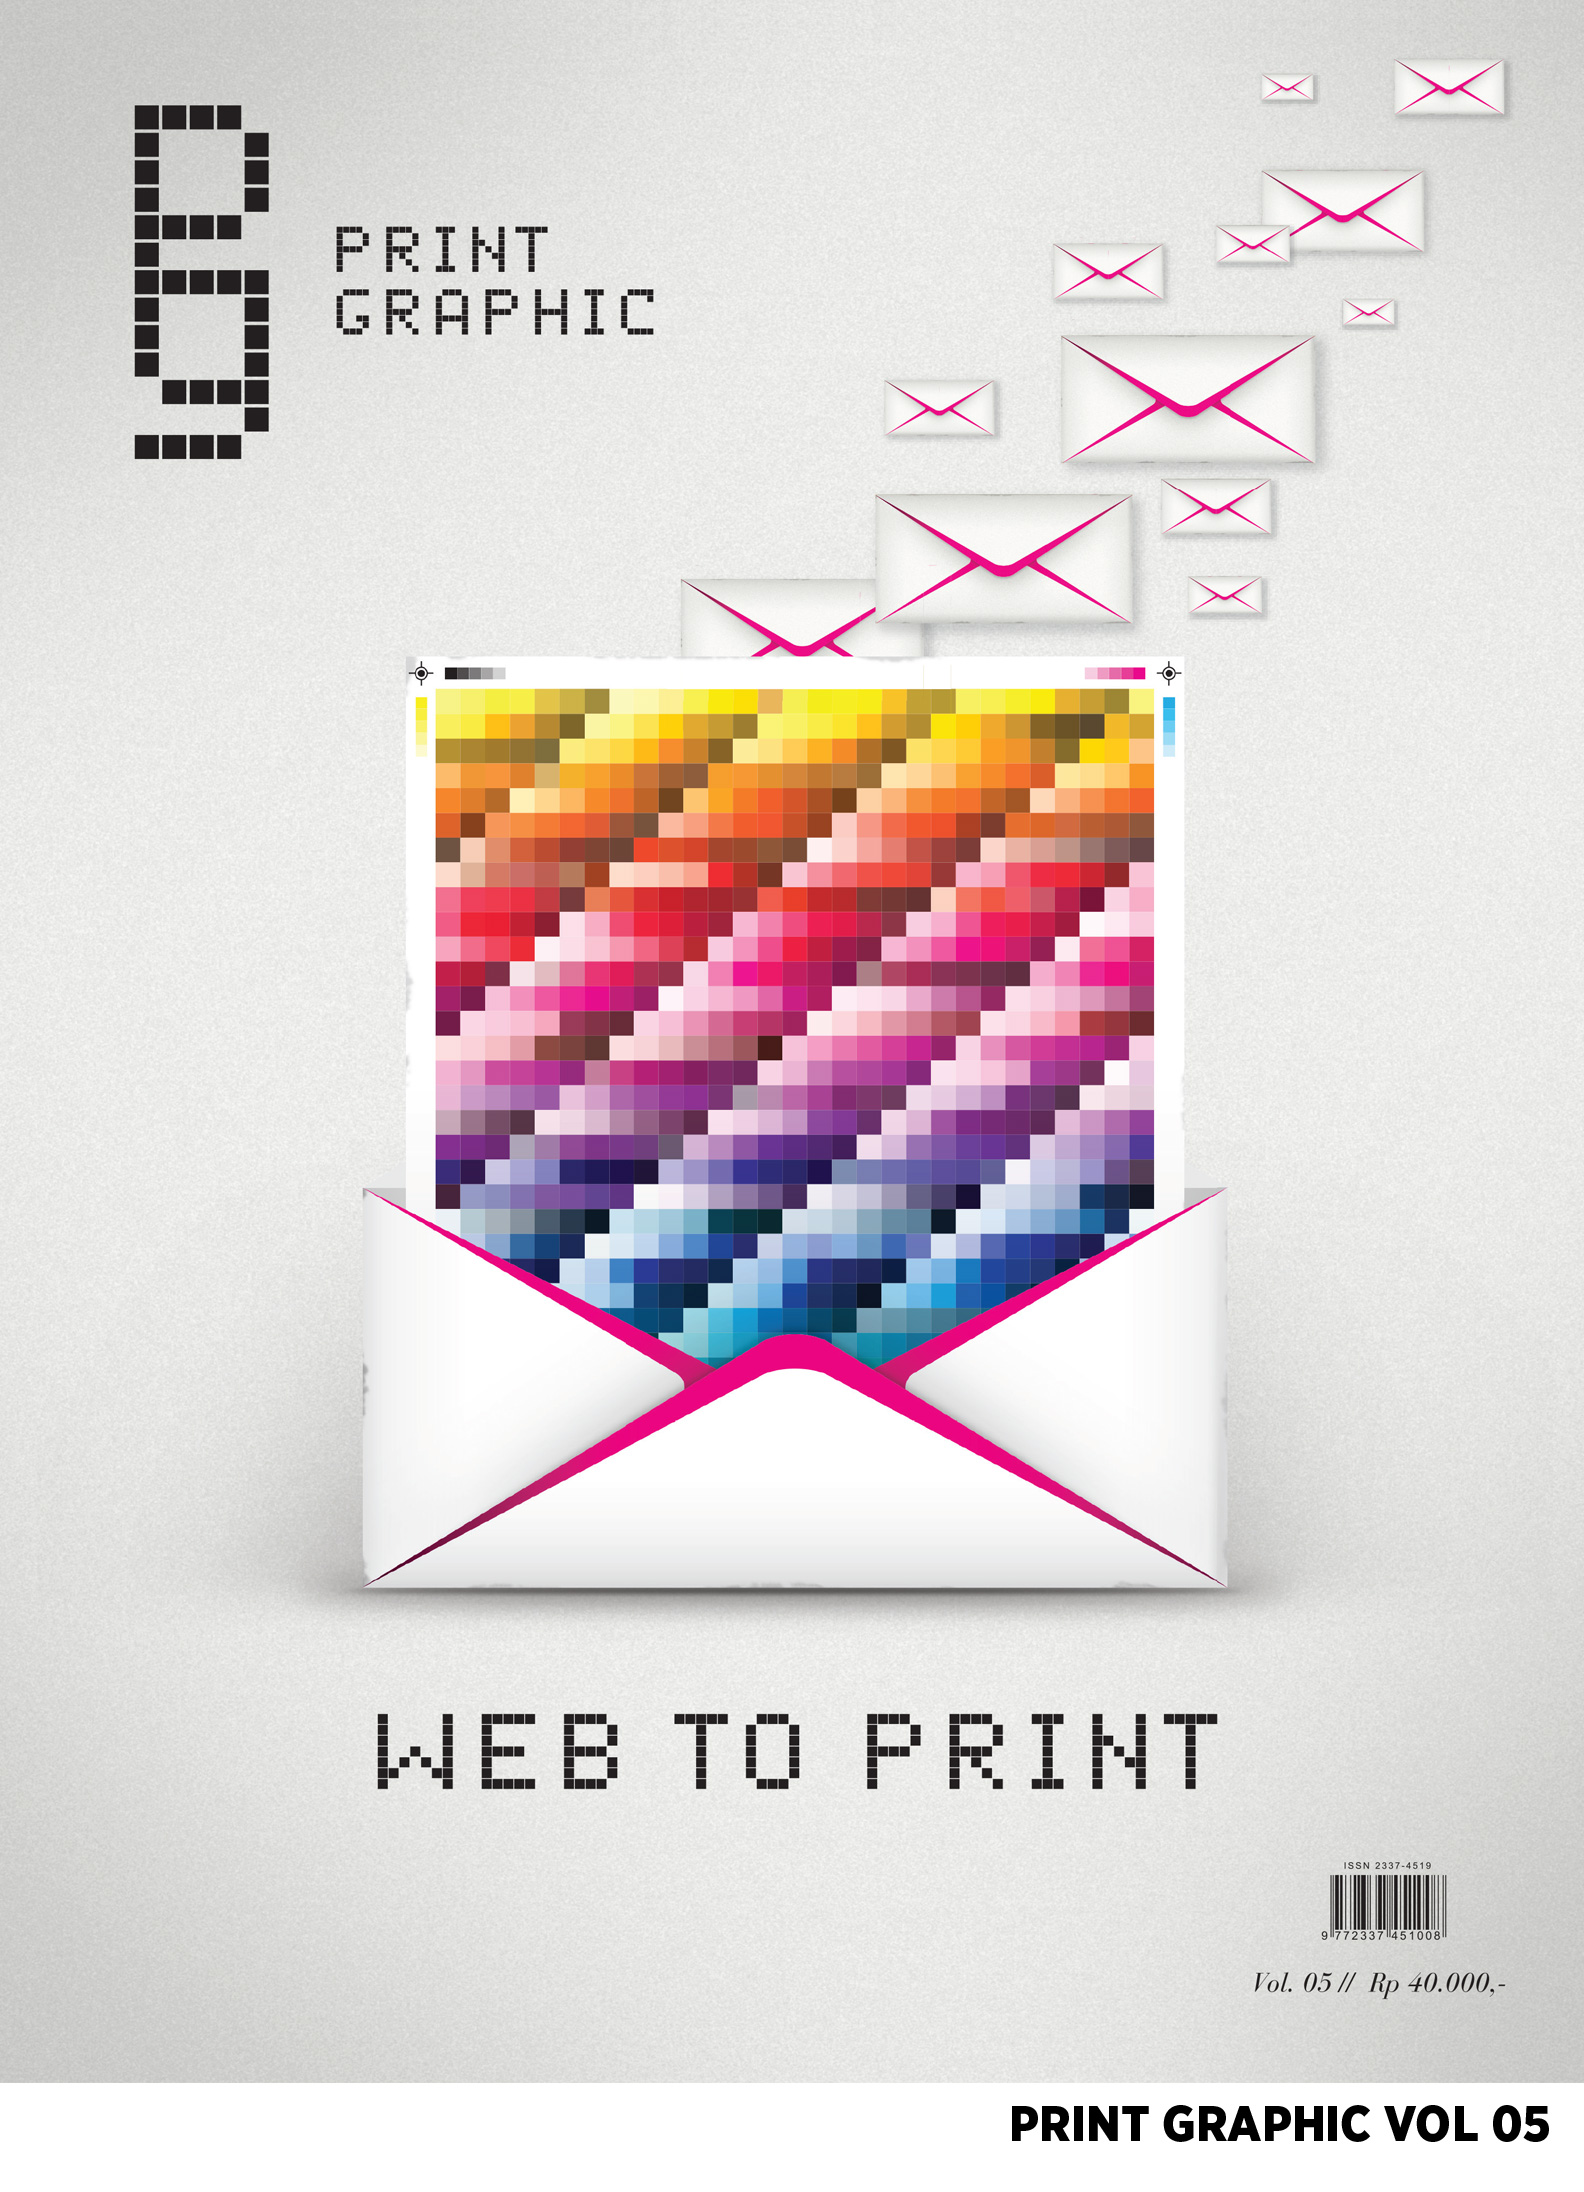 Design Is The Power of Print